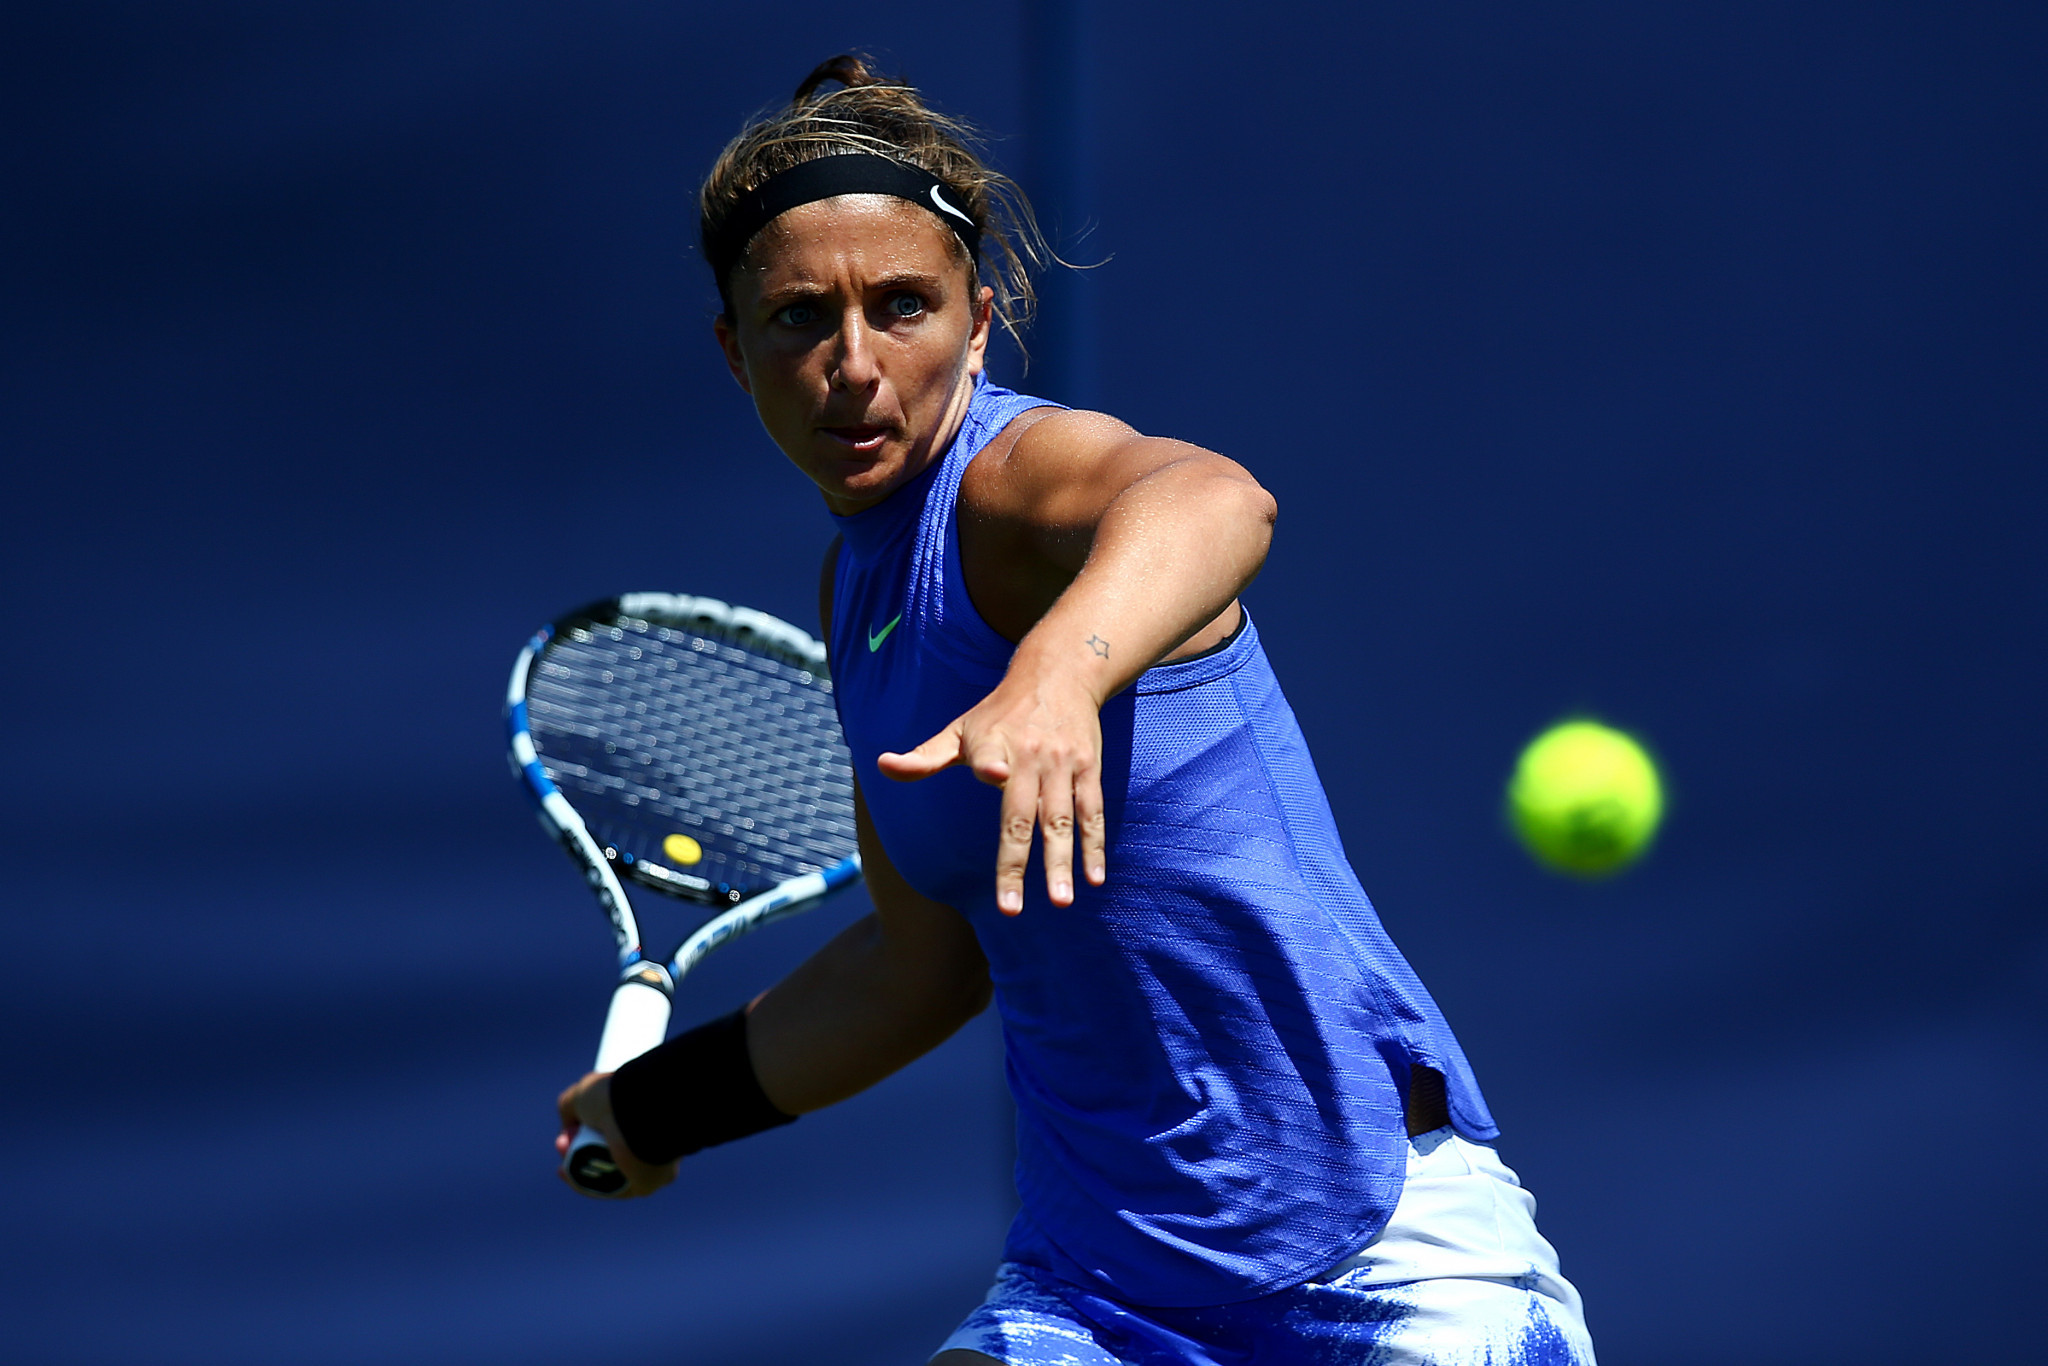 Sara Errani has attended a Court of Arbitration for Sport hearing ©Getty Images